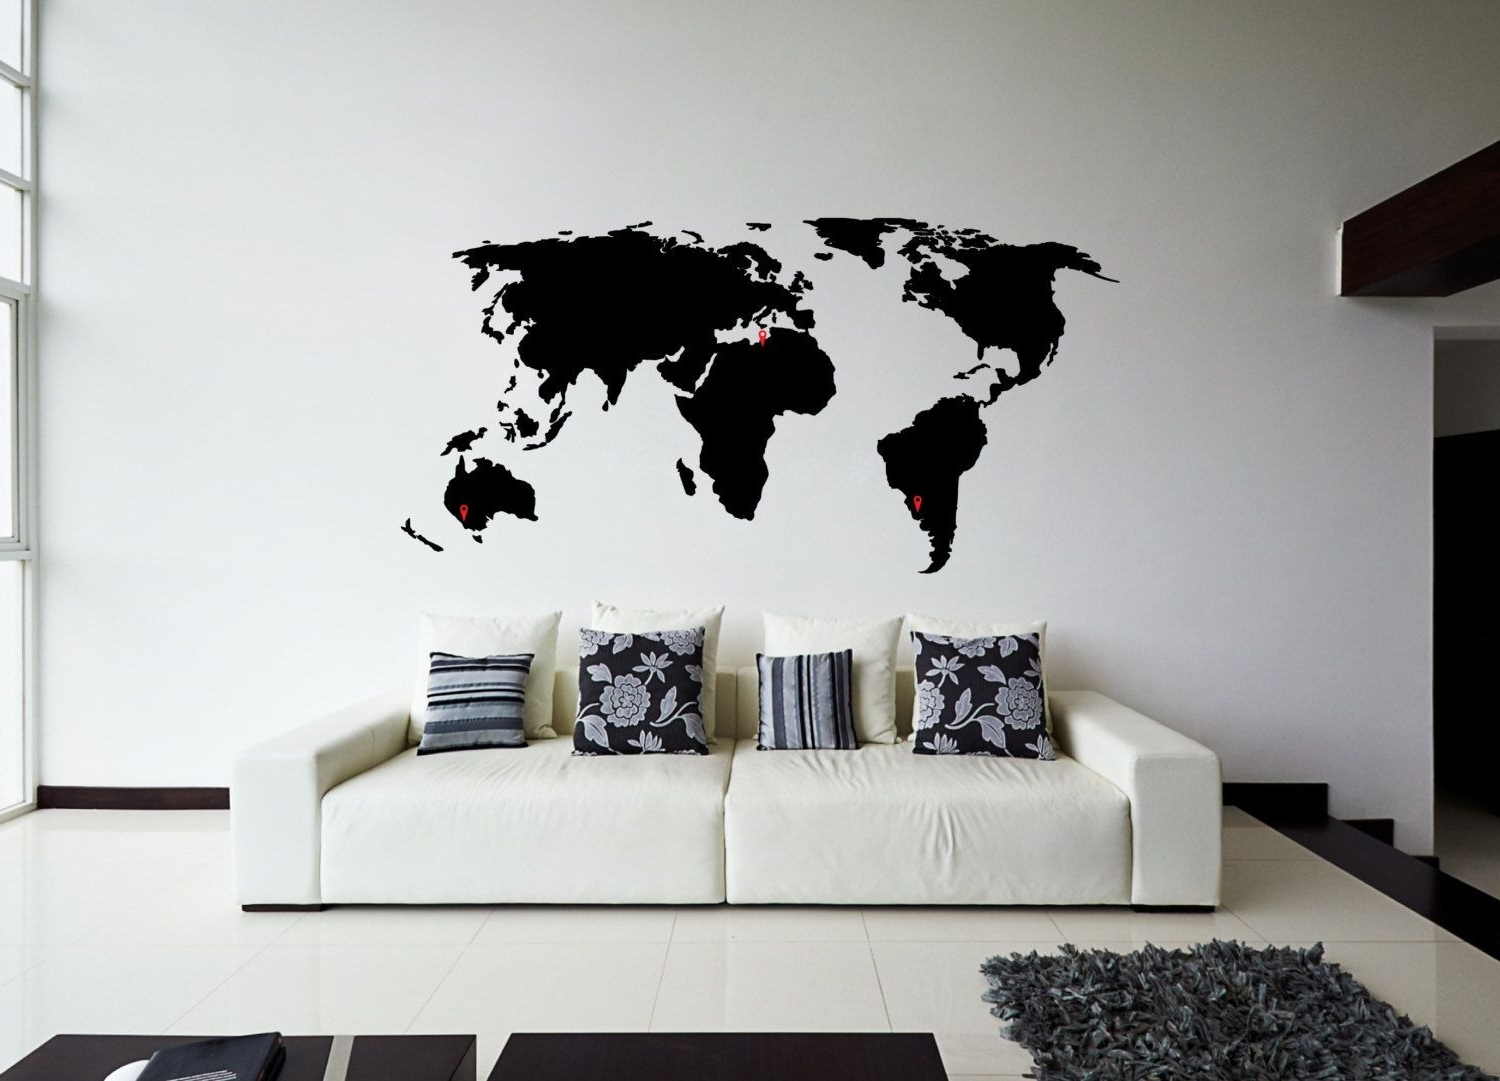 Recent Wall Art Stickers World Map Pertaining To World Map Wall Sticker Design Wall Travel Decor Design Of Black Wall (View 13 of 20)